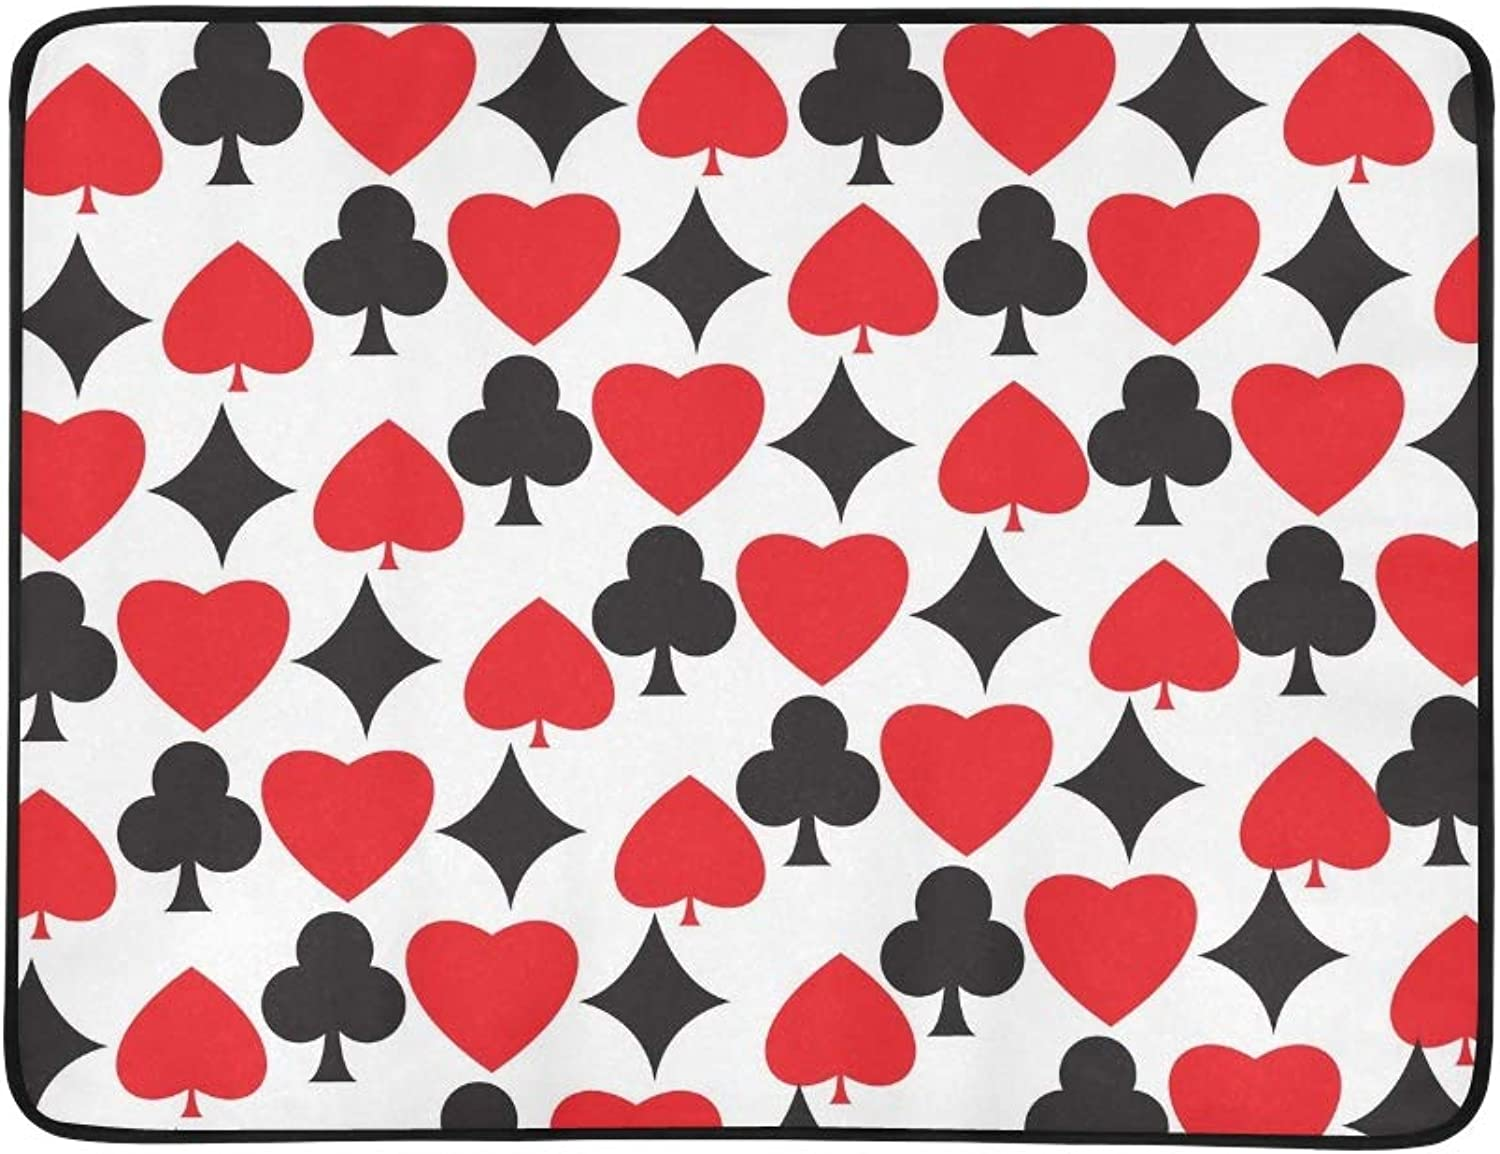 Poker Card Style with Red Black Portable and Foldable Blanket Mat 60x78 Inch Handy Mat for Camping Picnic Beach Indoor Outdoor Travel